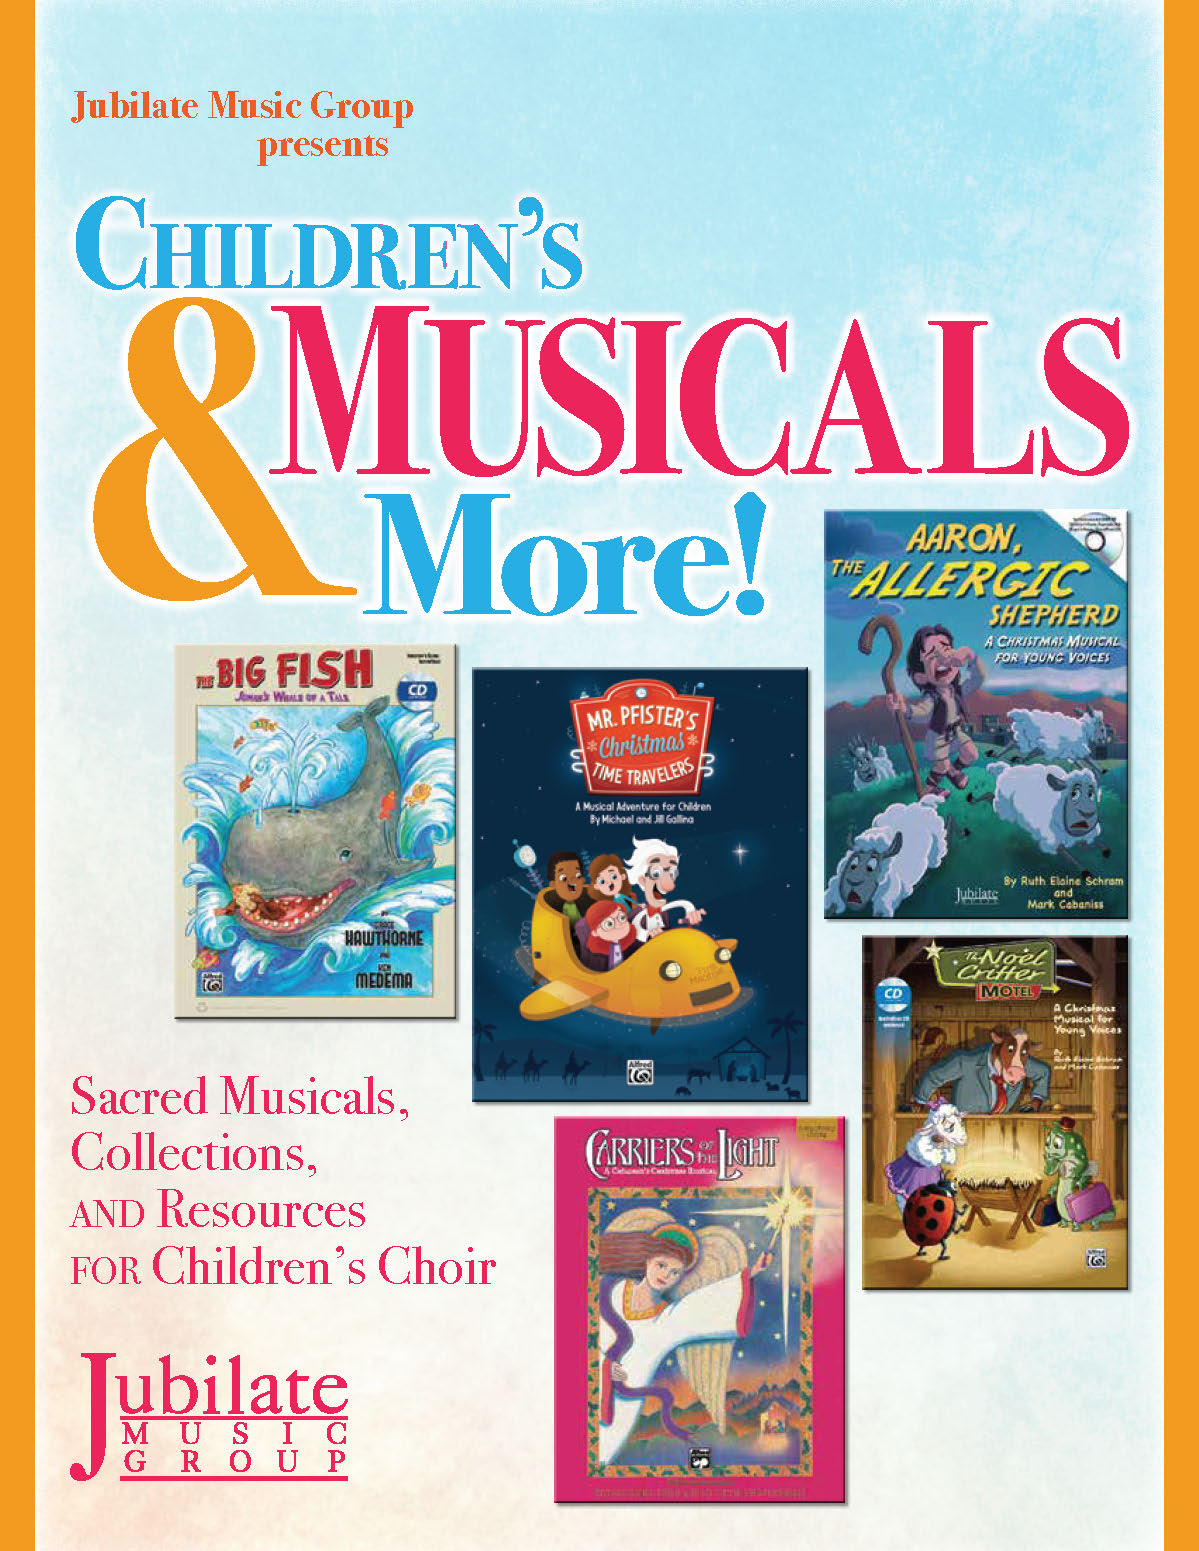 Jubilate: Children's Musicals & More